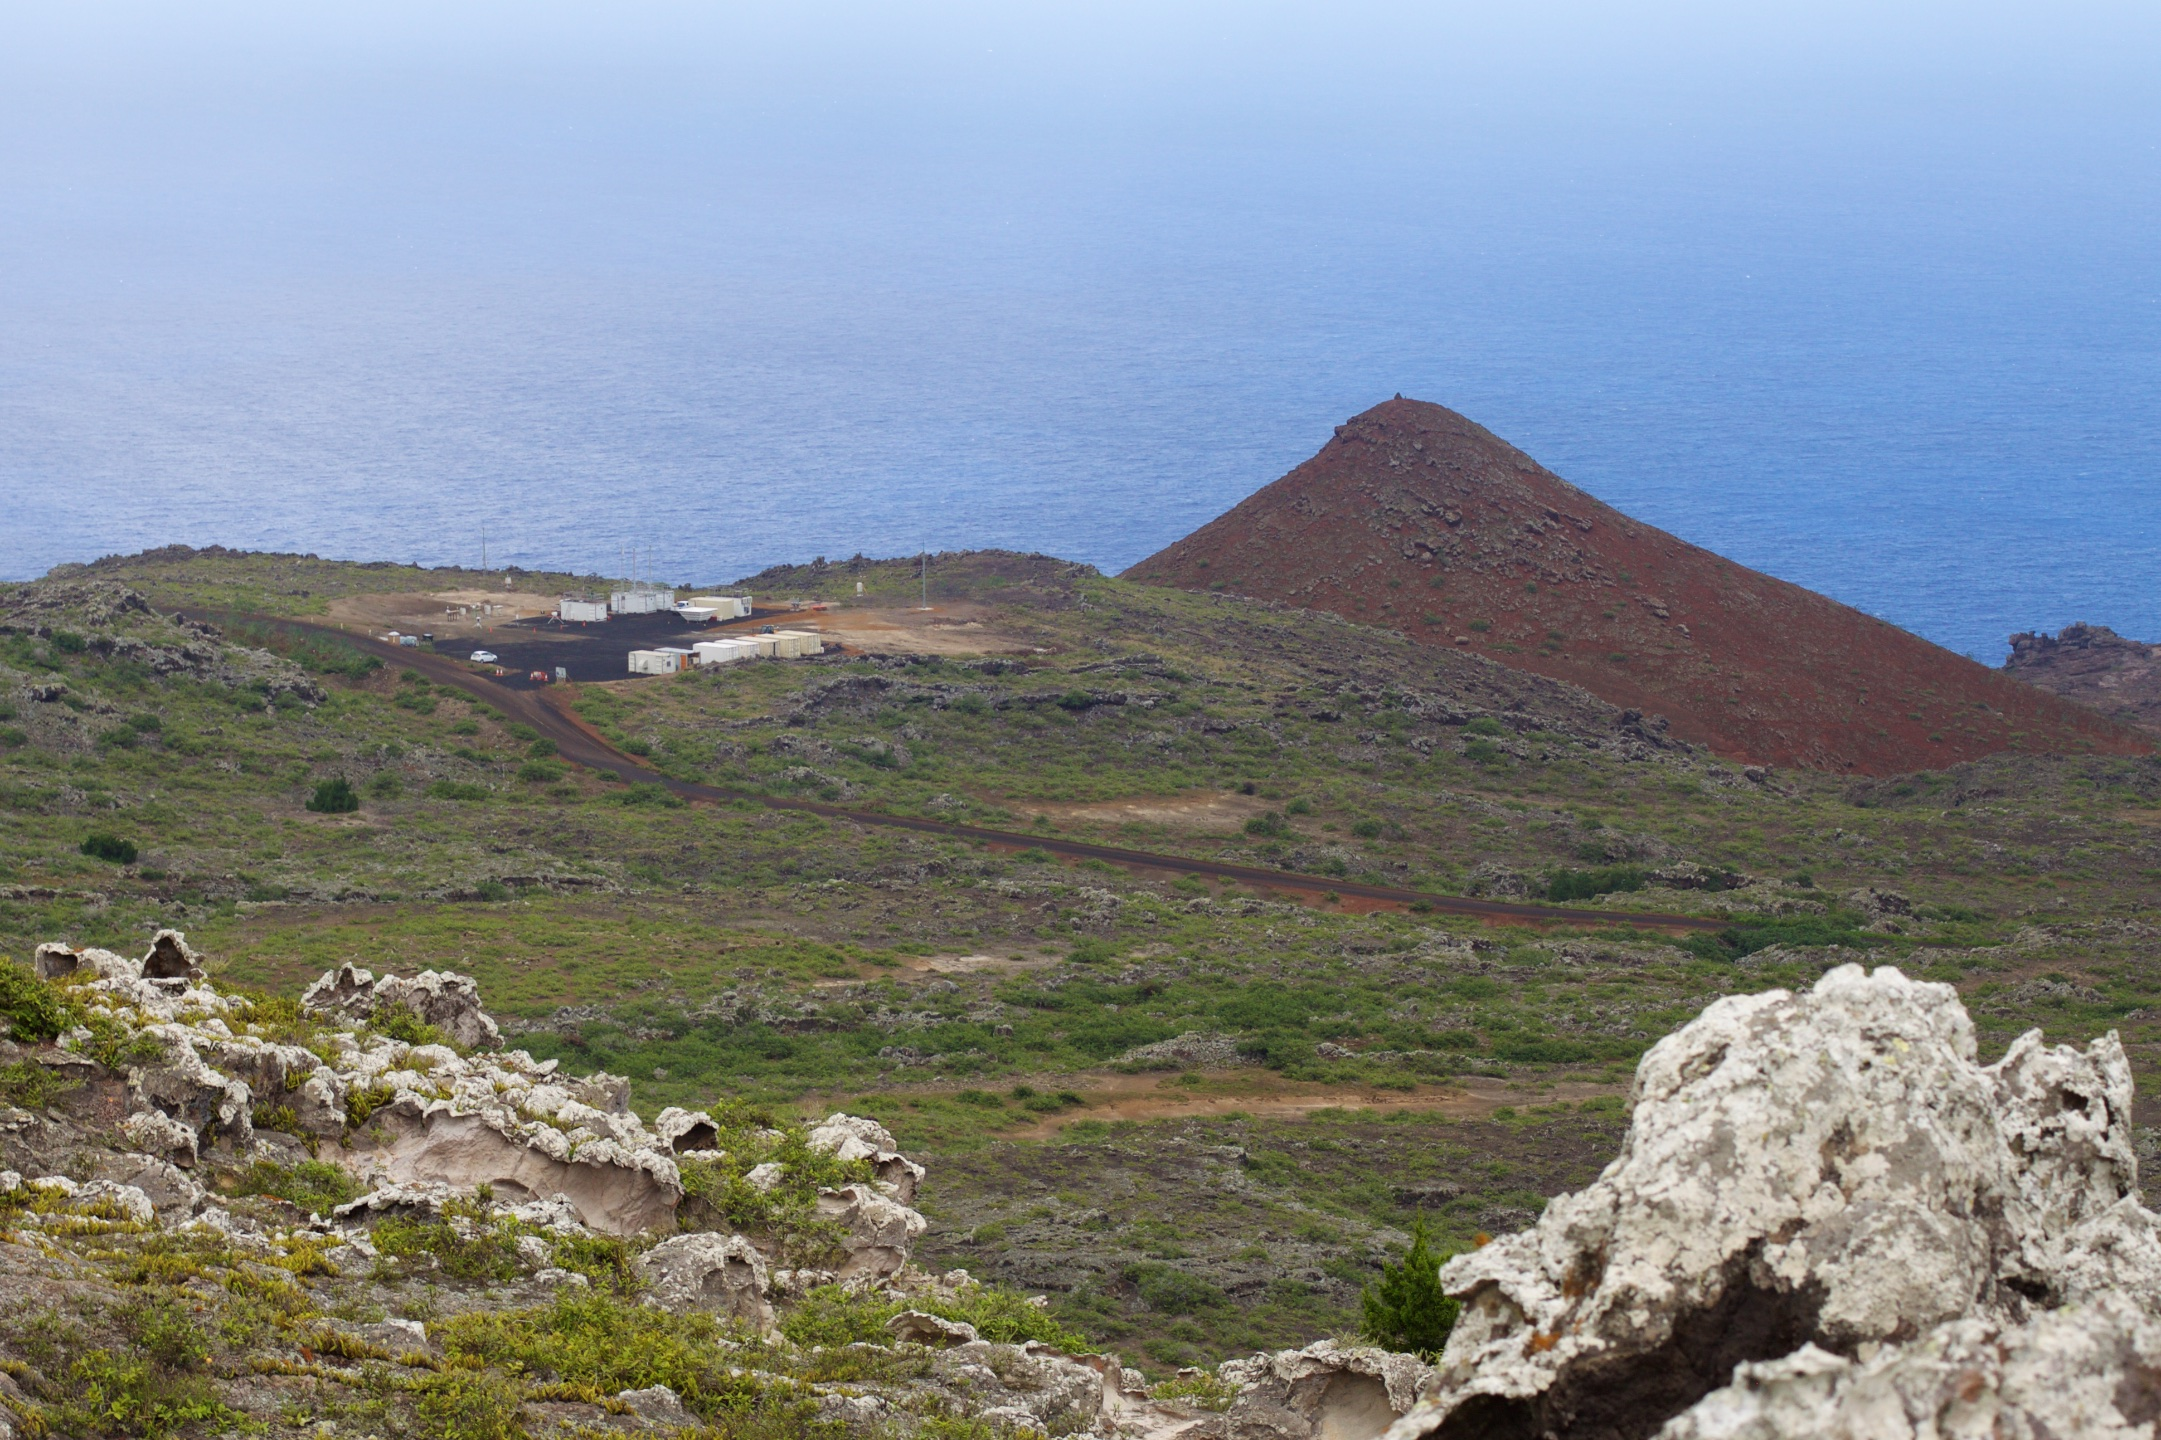 The first ARM Mobile Facility is deployed on Ascension Island for the LASIC campaign.